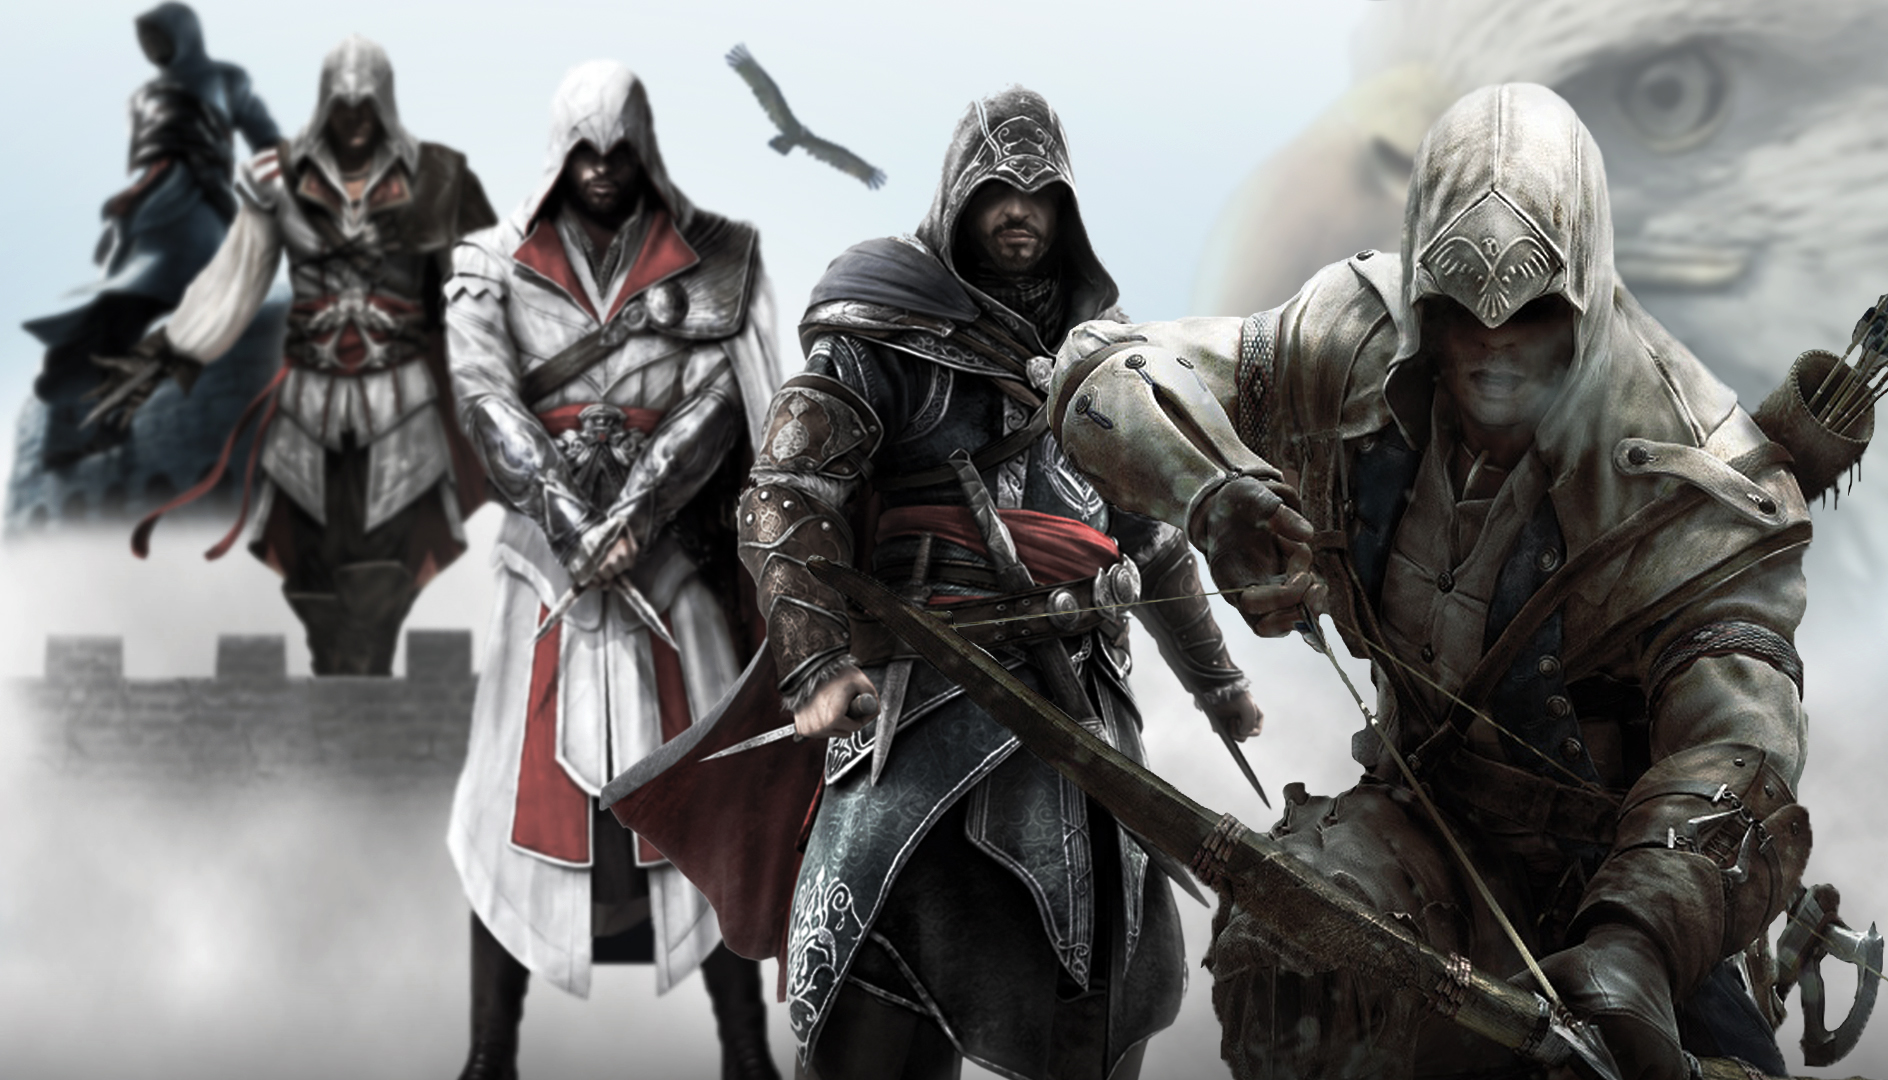 ... Abyss Everything Assassin's Creed Video Game Assassin's Creed 327599